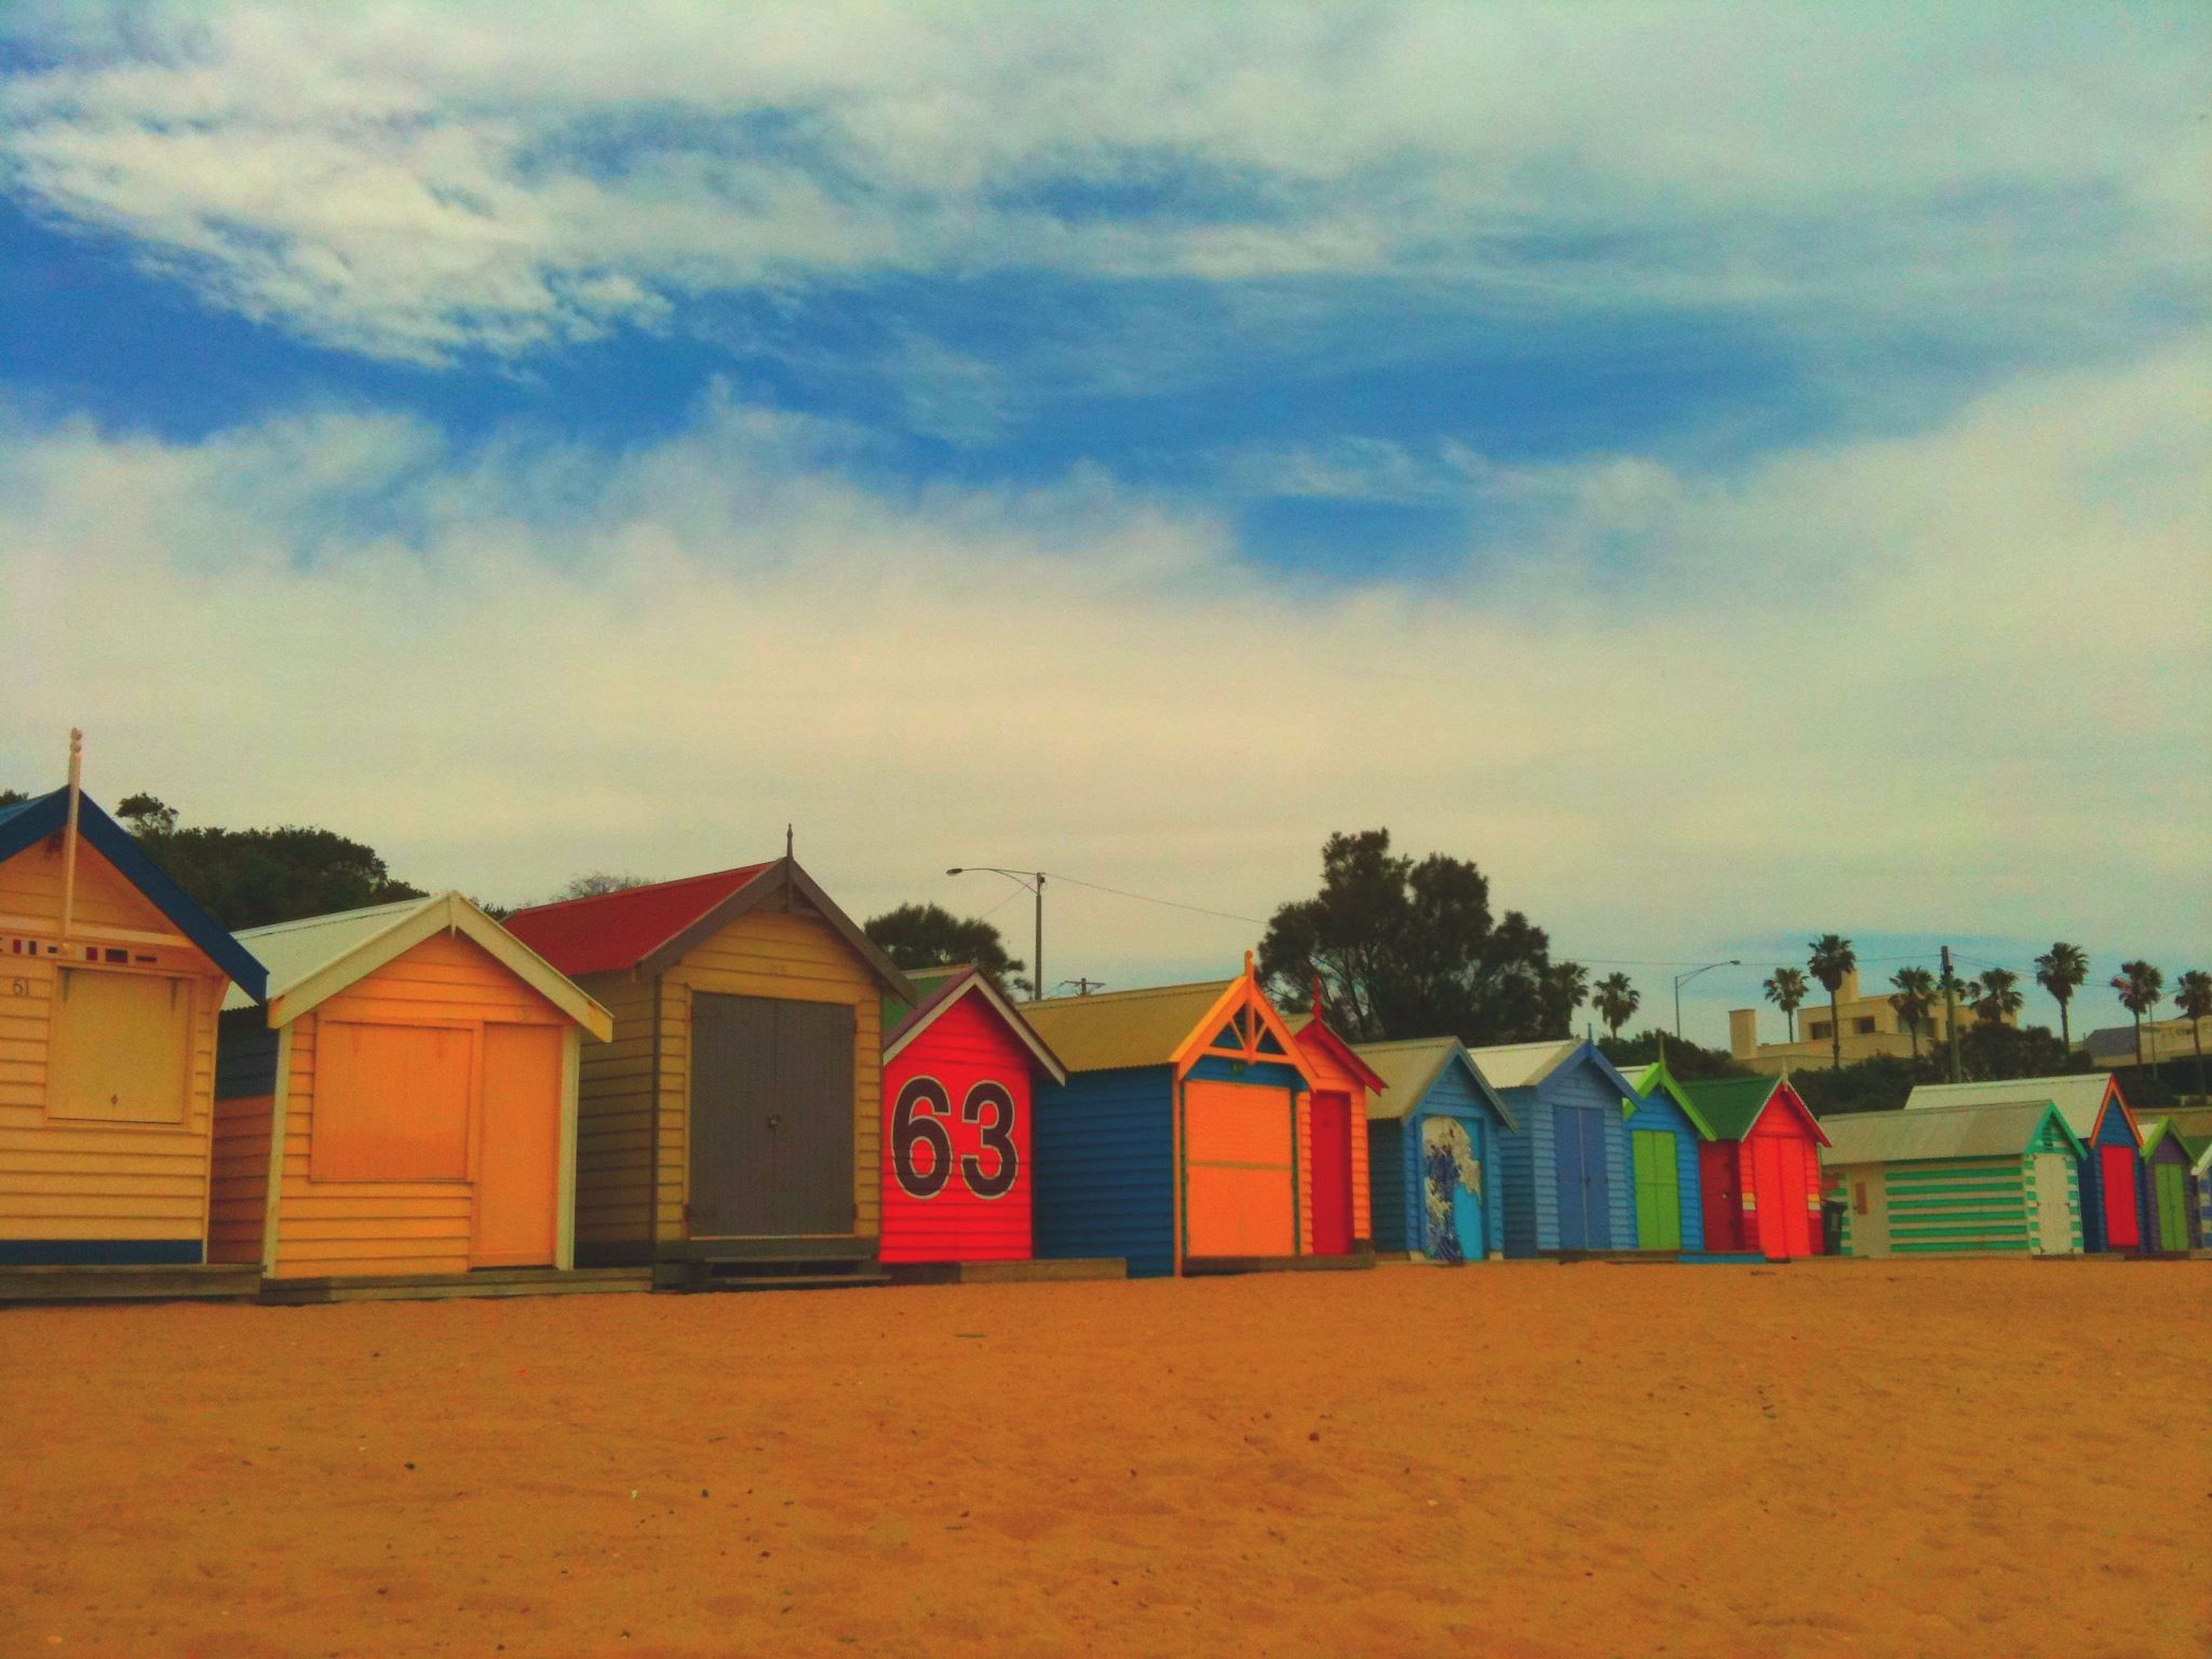 sky, built structure, architecture, building exterior, multi colored, cloud - sky, house, cloud, in a row, sand, colorful, cloudy, outdoors, beach, day, roof, nature, beach hut, no people, tranquility